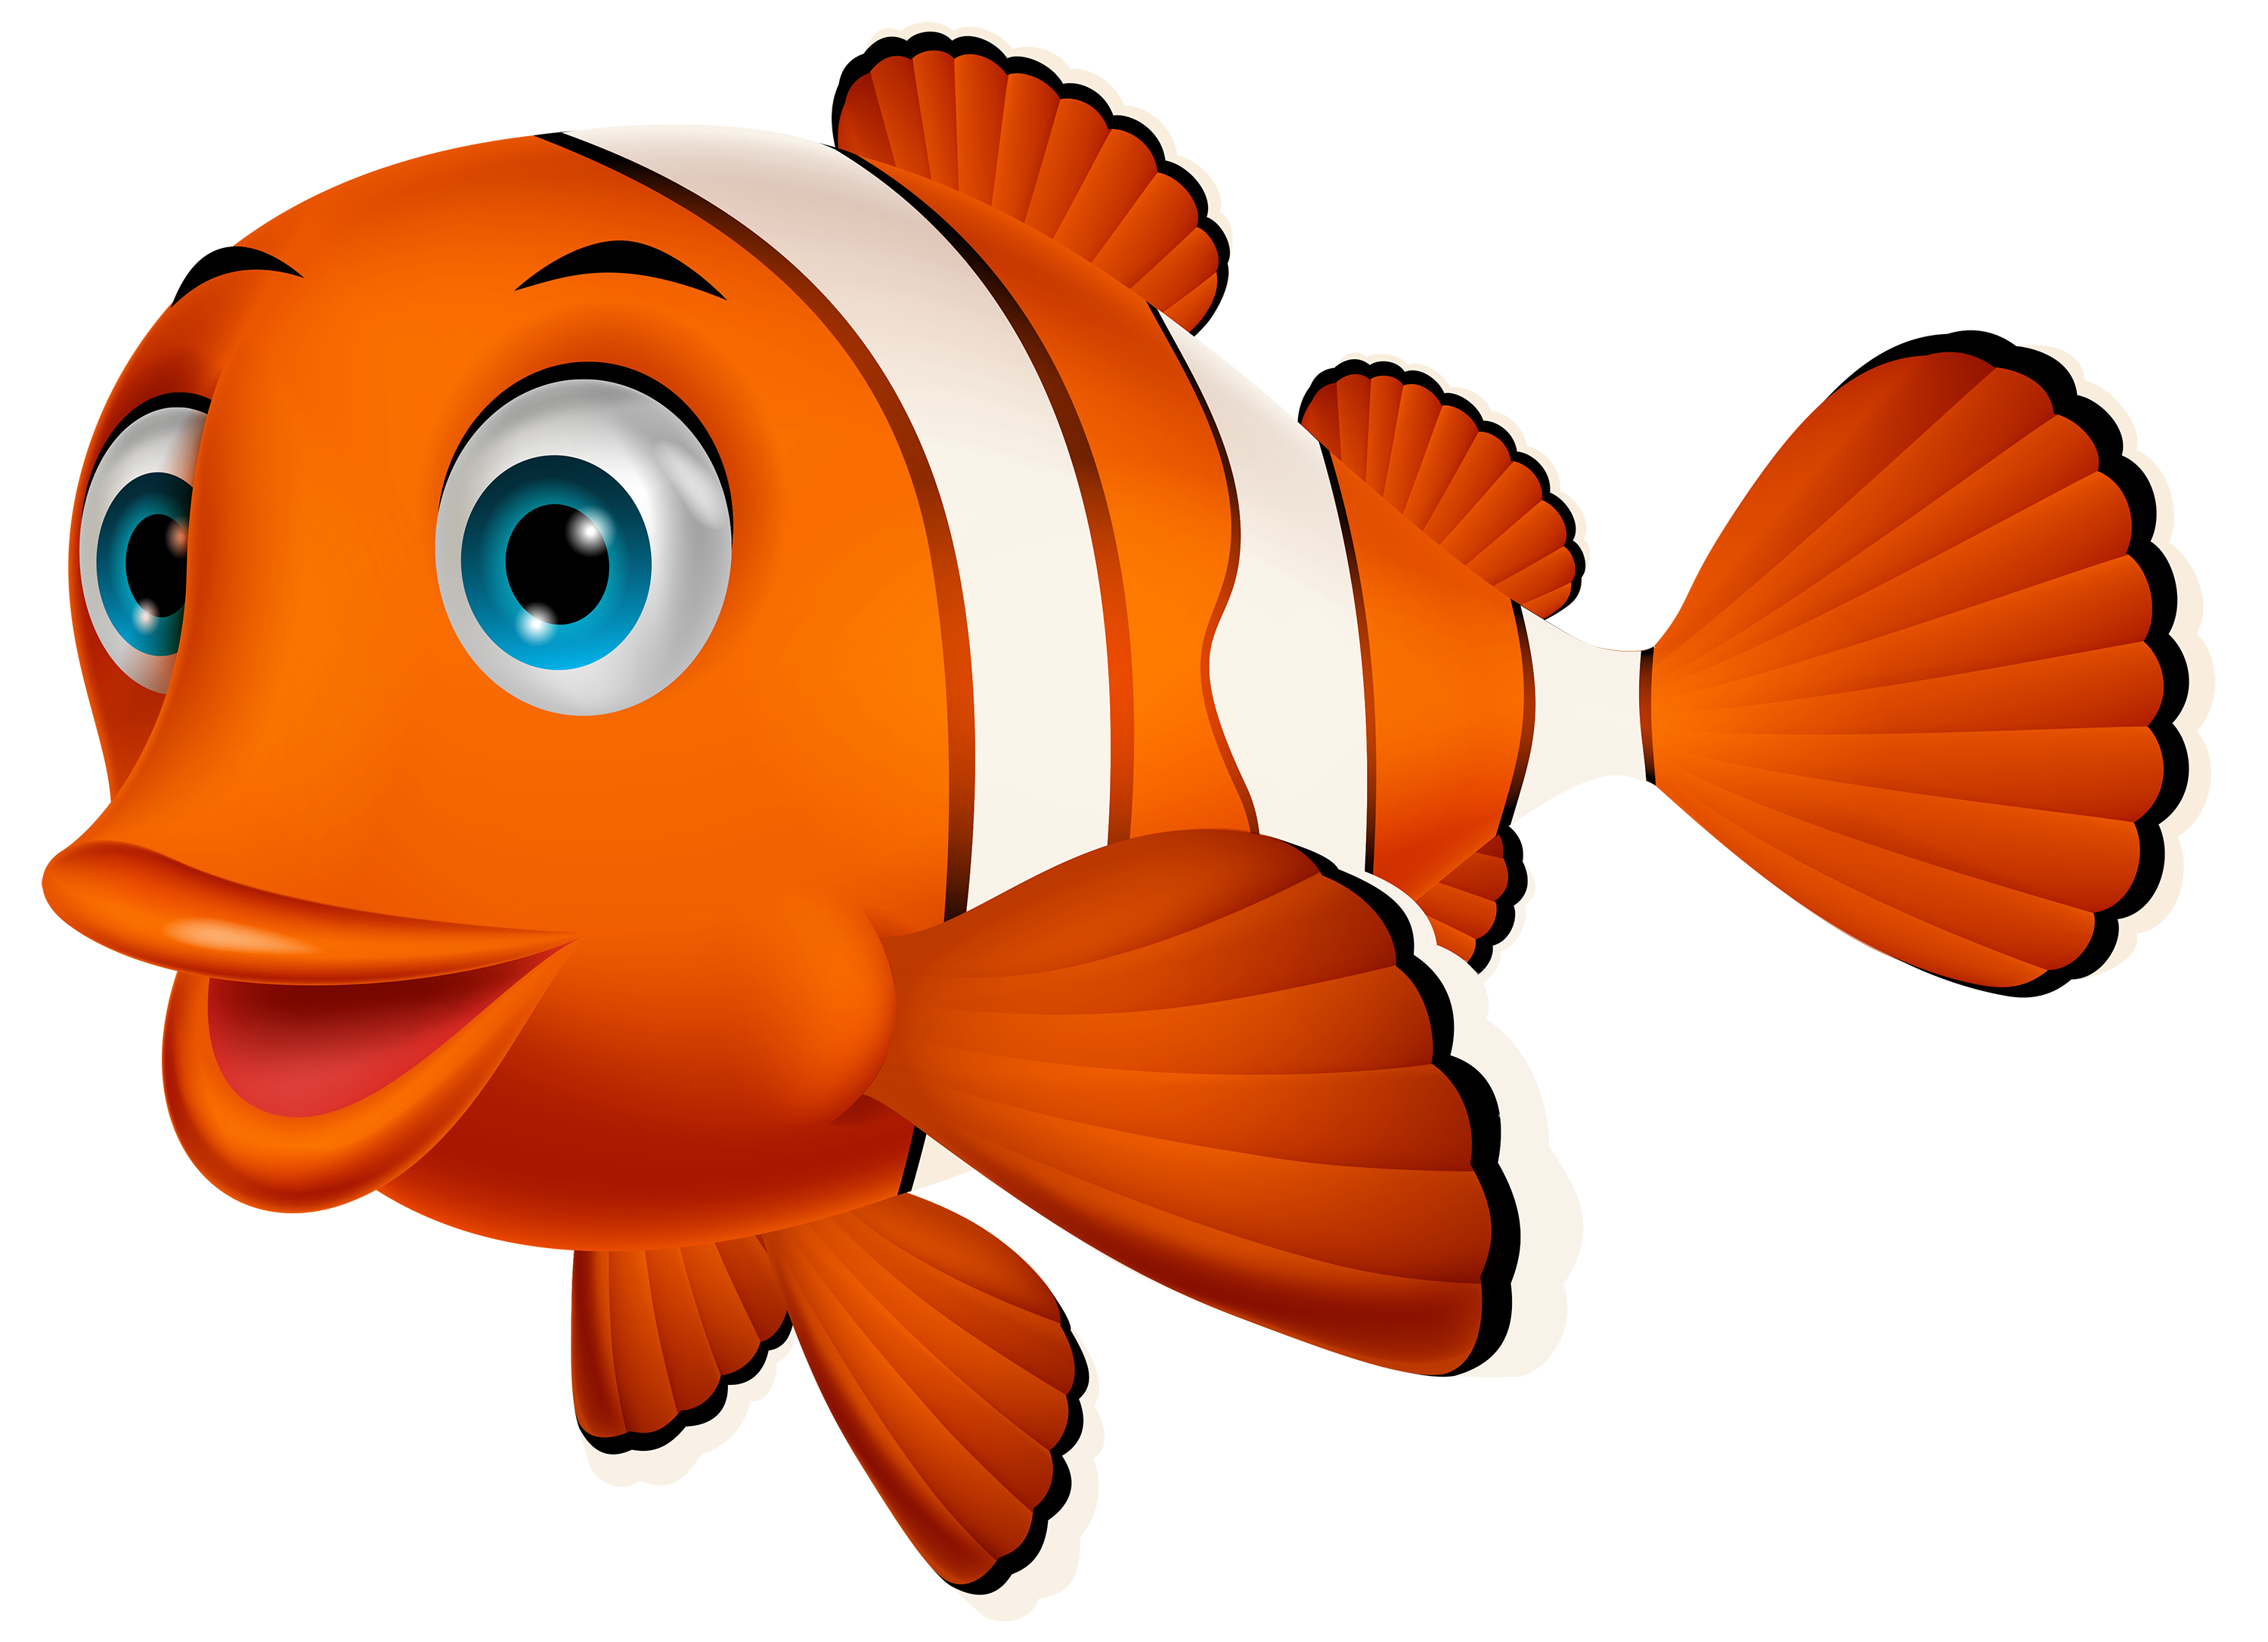 Fish images free clip. Lips clipart clown